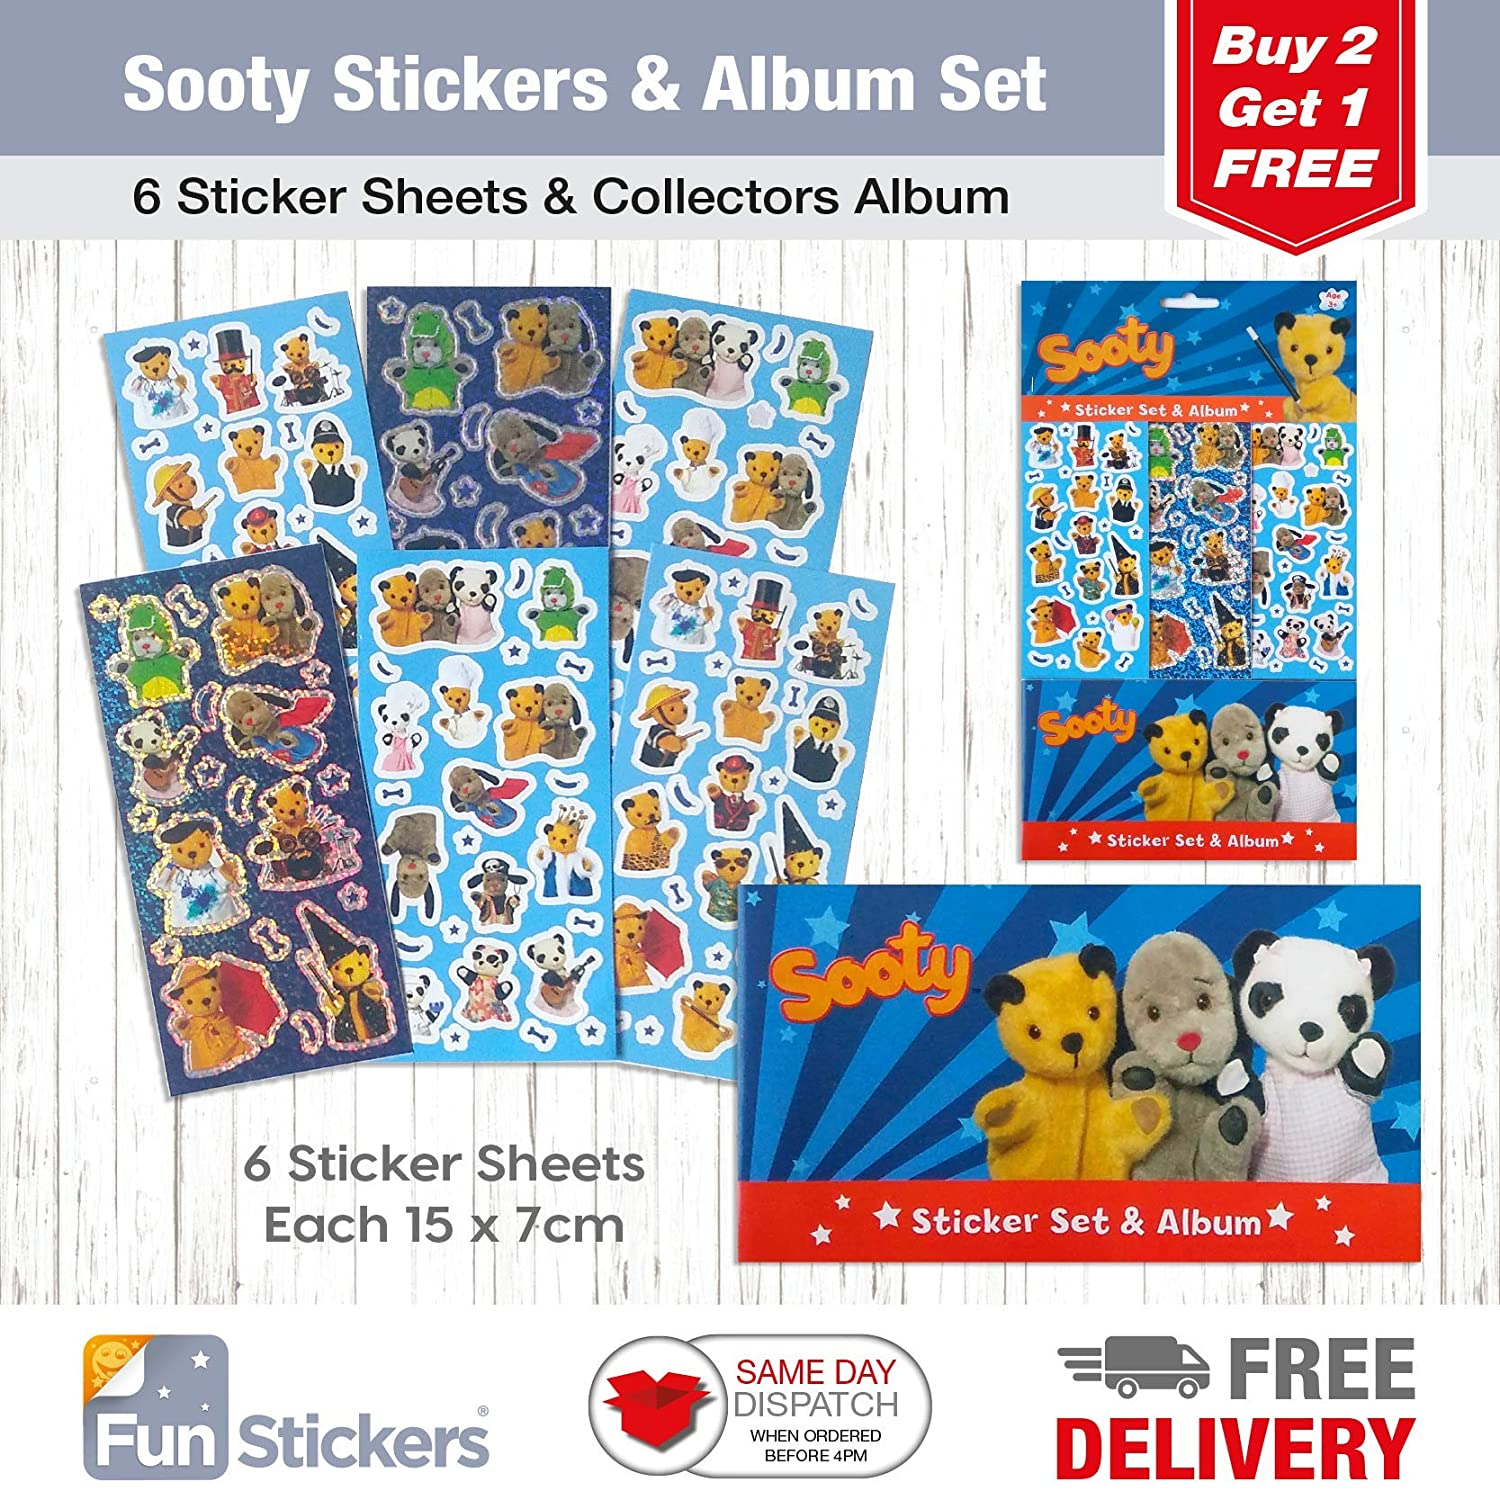 Sooty Stickers, 6 Sheets, Each sheet 14 x 7cm with Sticker Album Funstickers